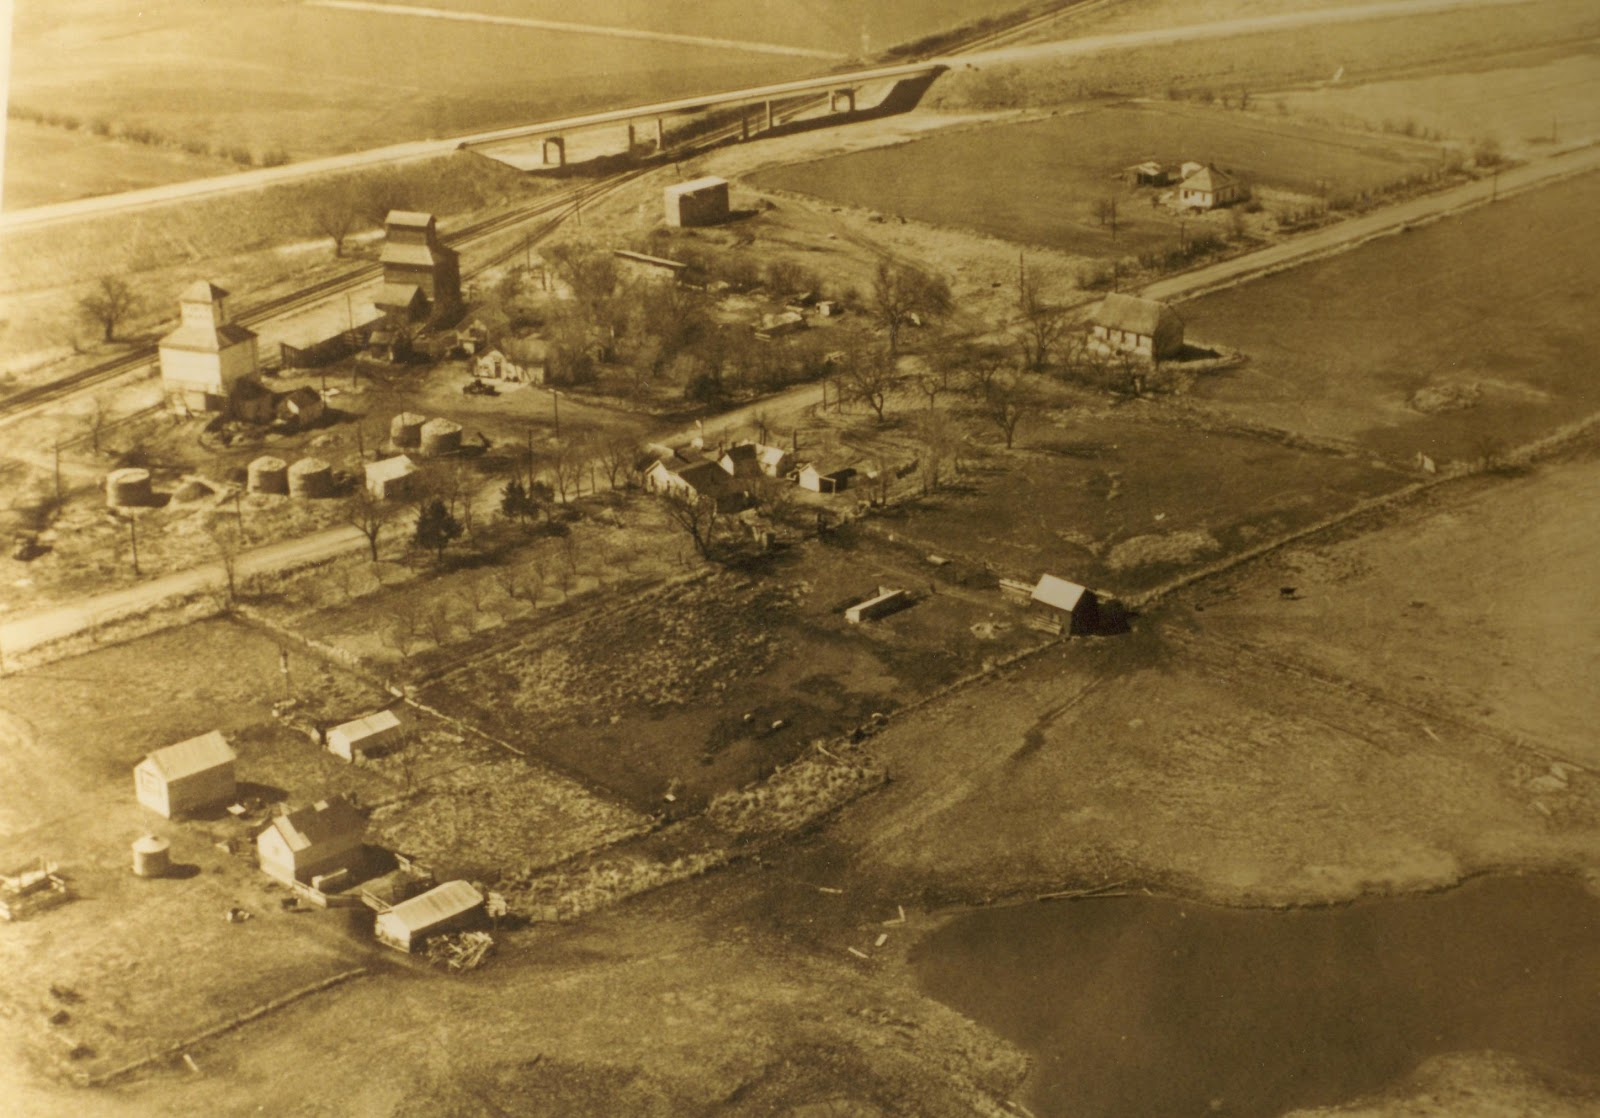 Kansas republic county agenda - Rydal Kansas Was As Ordinary As Any Town Planted In Kansas In The Late 1800s